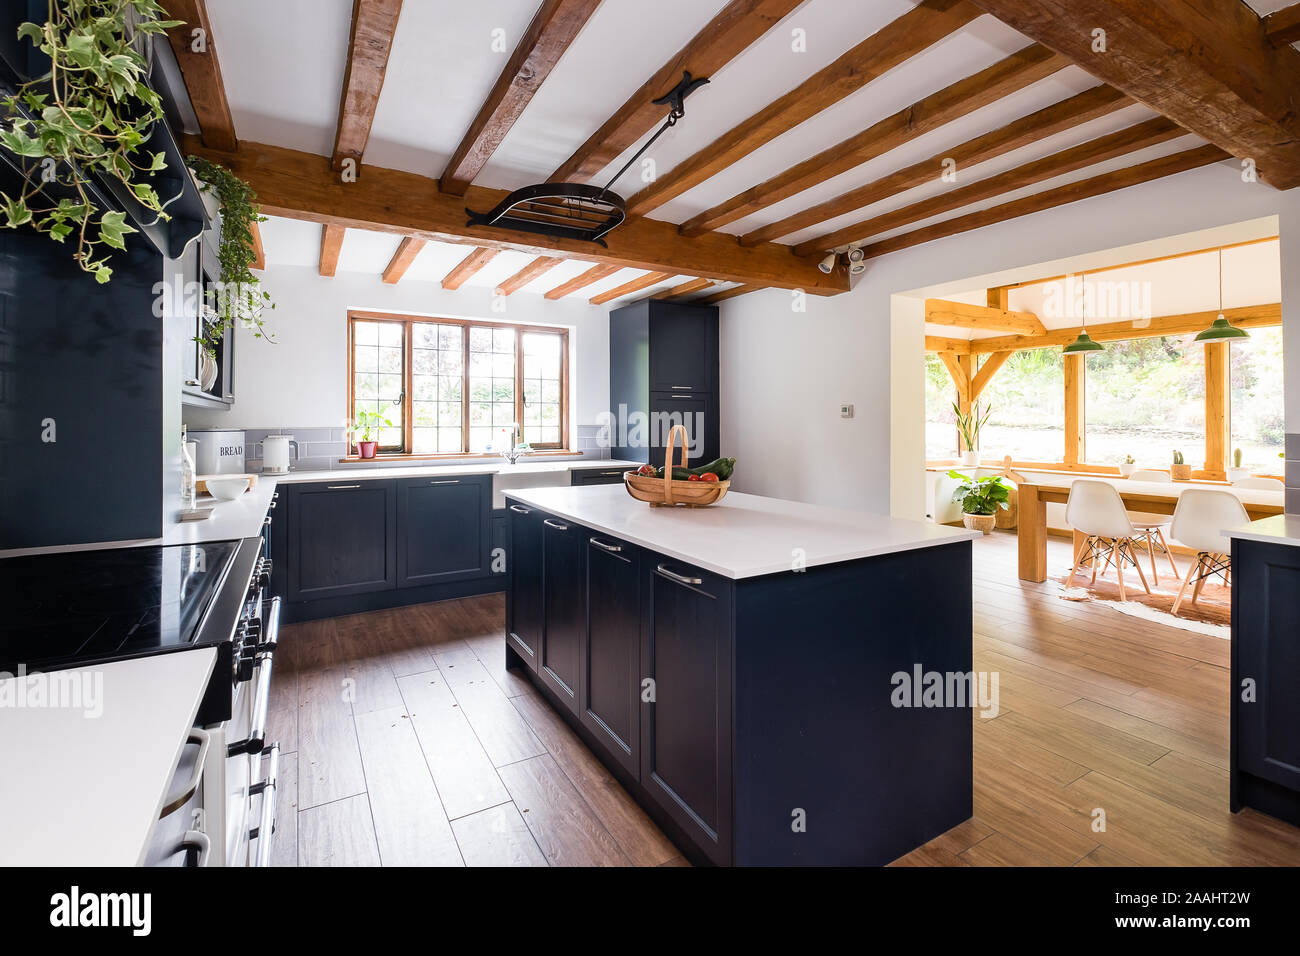 Modern Kitchen Diner High Resolution Stock Photography And Images Alamy